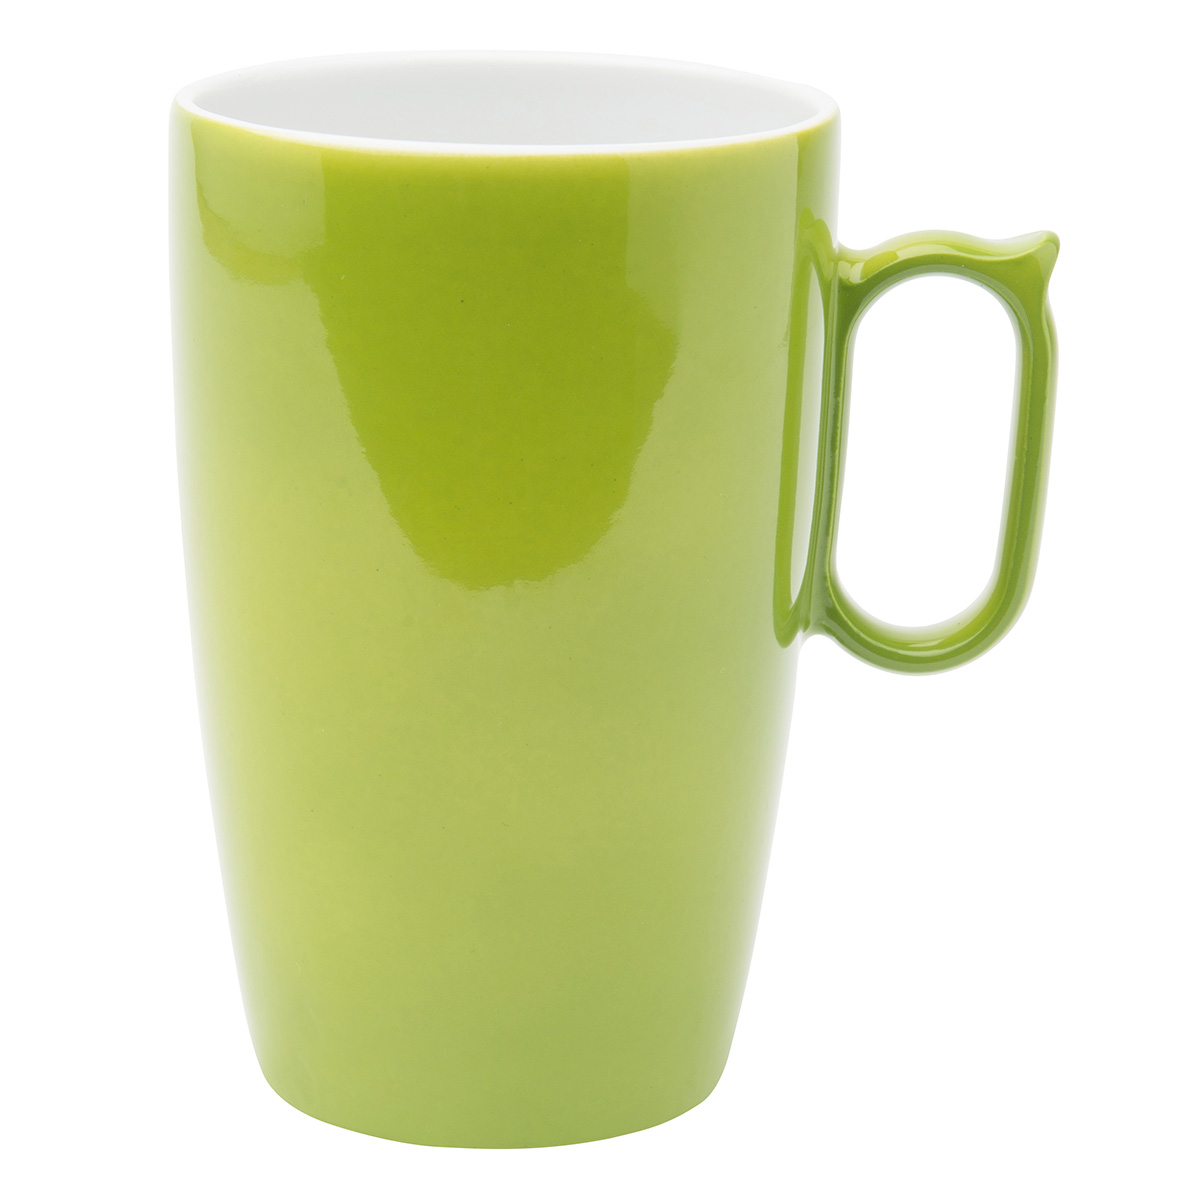 Smoos lime tasse a espresso 6 cl les tasses la table - La table parisienne angouleme ...